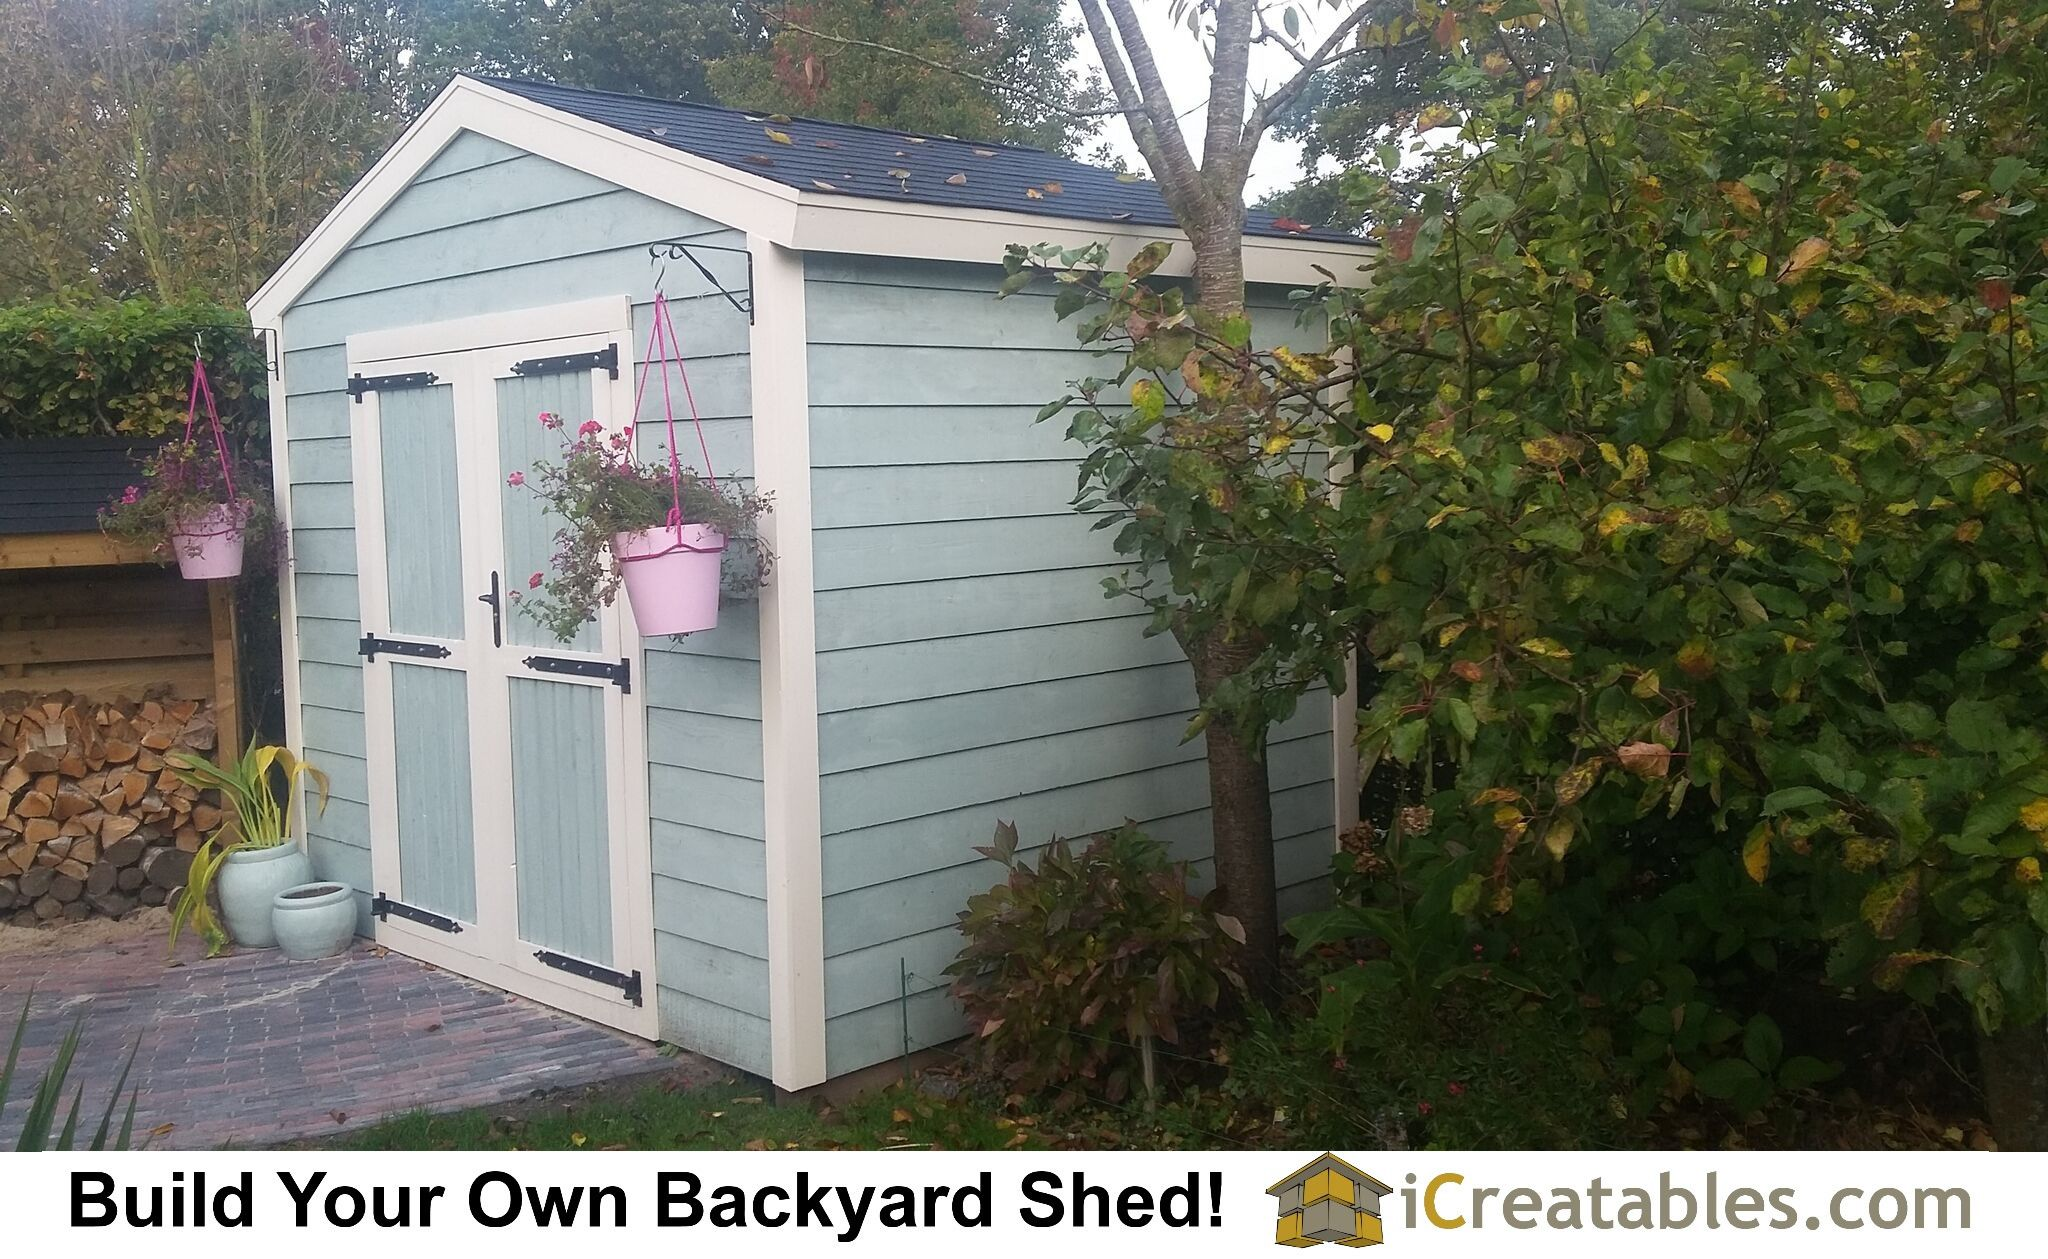 Metric Shed Plans Metric Dimension Backyard Shed Designs